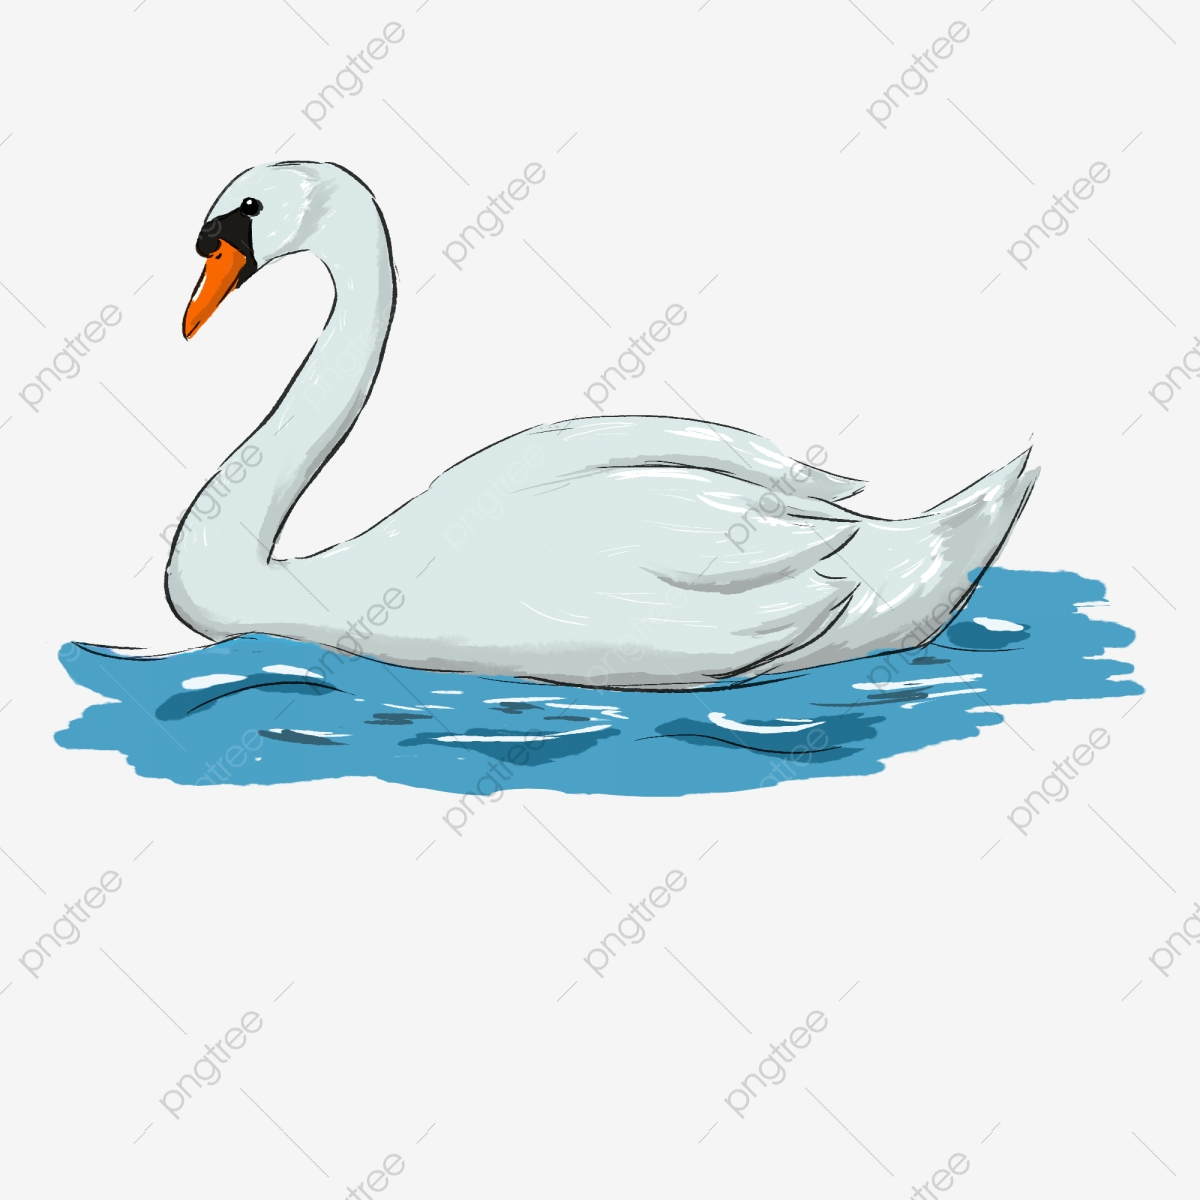 Swan head clipart Library of swan black and white graphic black and white  library | Chastity.captainamericagifts.com